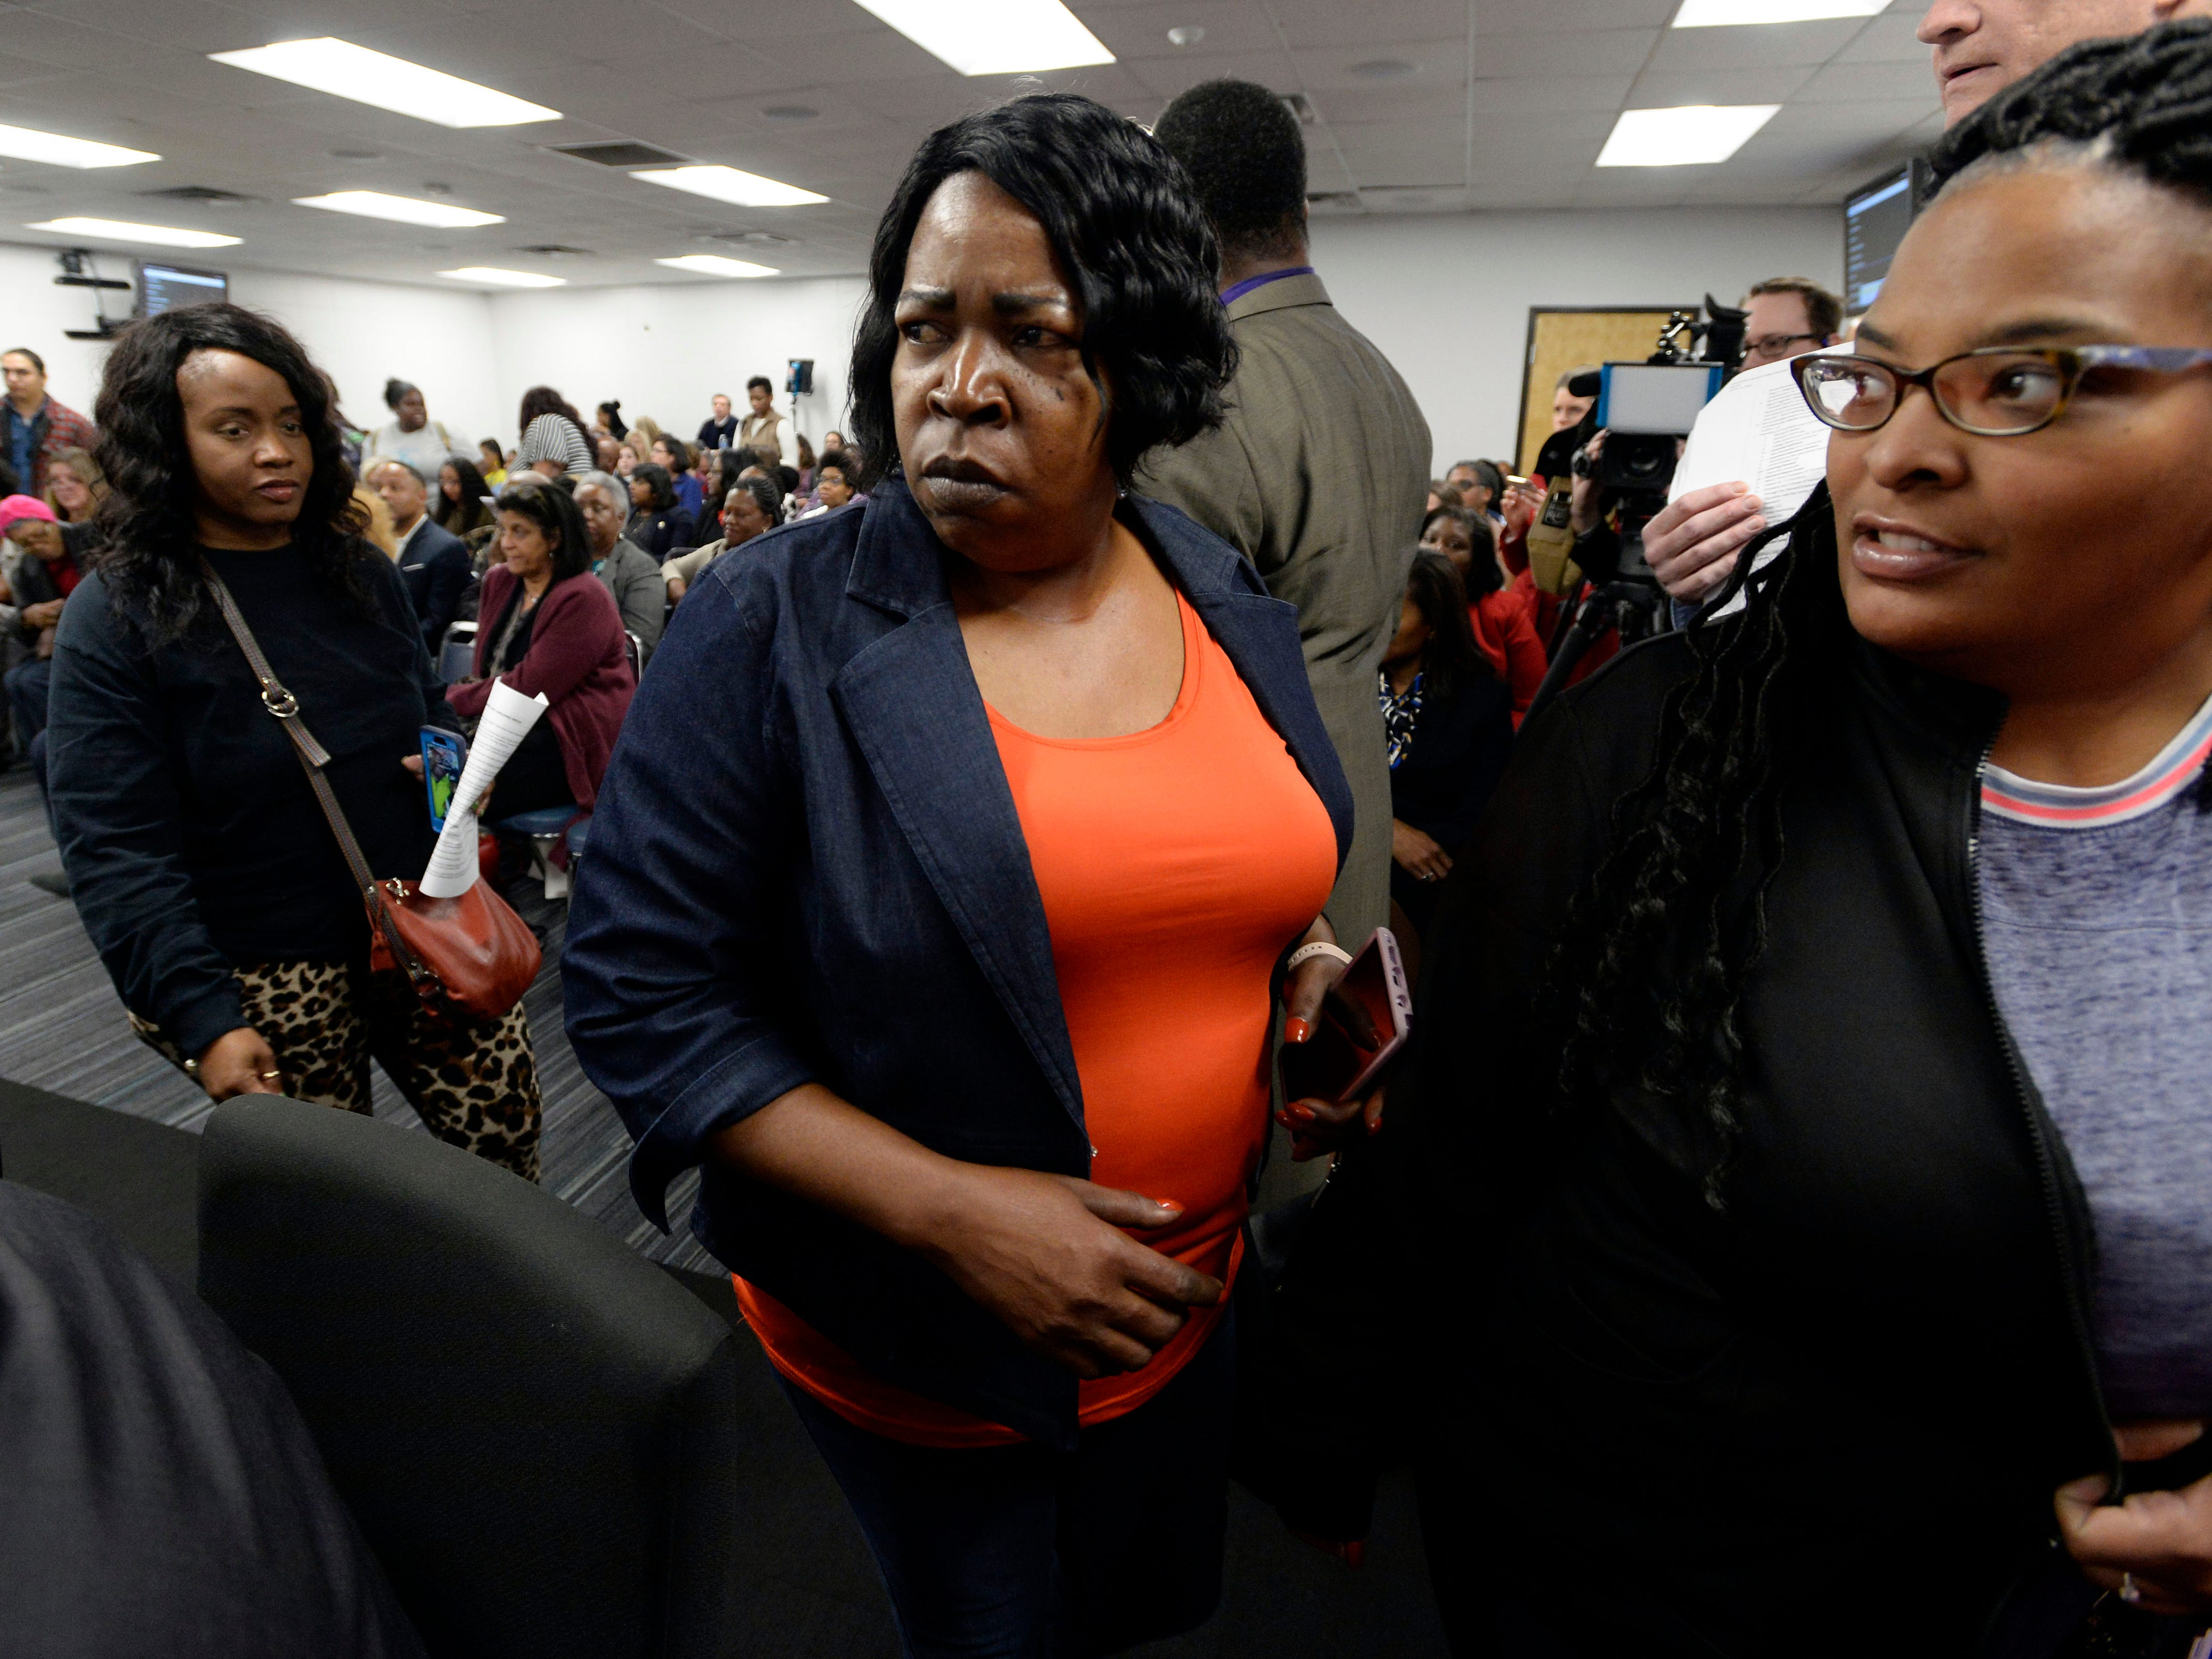 Parents walk out of the Metropolitan Nashville Public Board of Education board meeting on Tuesday, Jan. 8, 2019, in Nashville, Tenn., because they became angry when board members did not talk about the quality of education for their children.